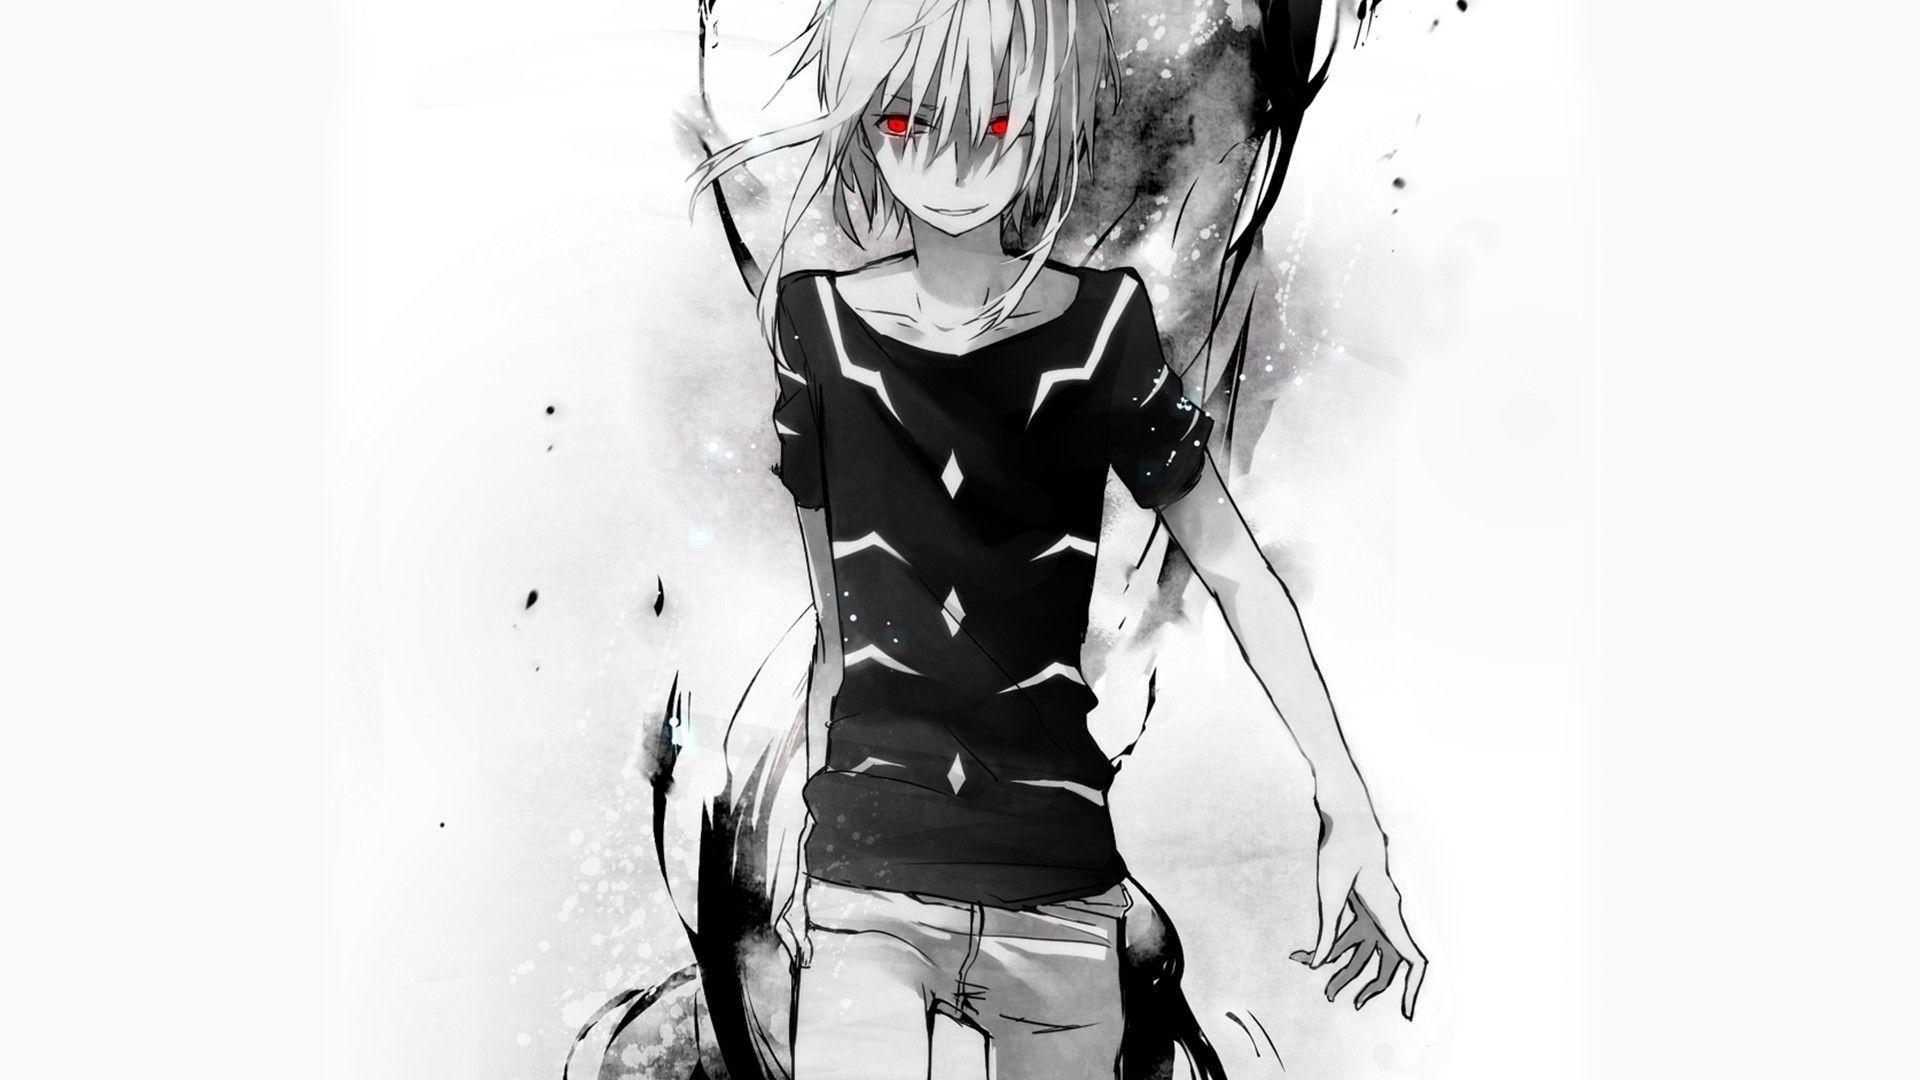 black and white anime wallpapers - wallpaper cave